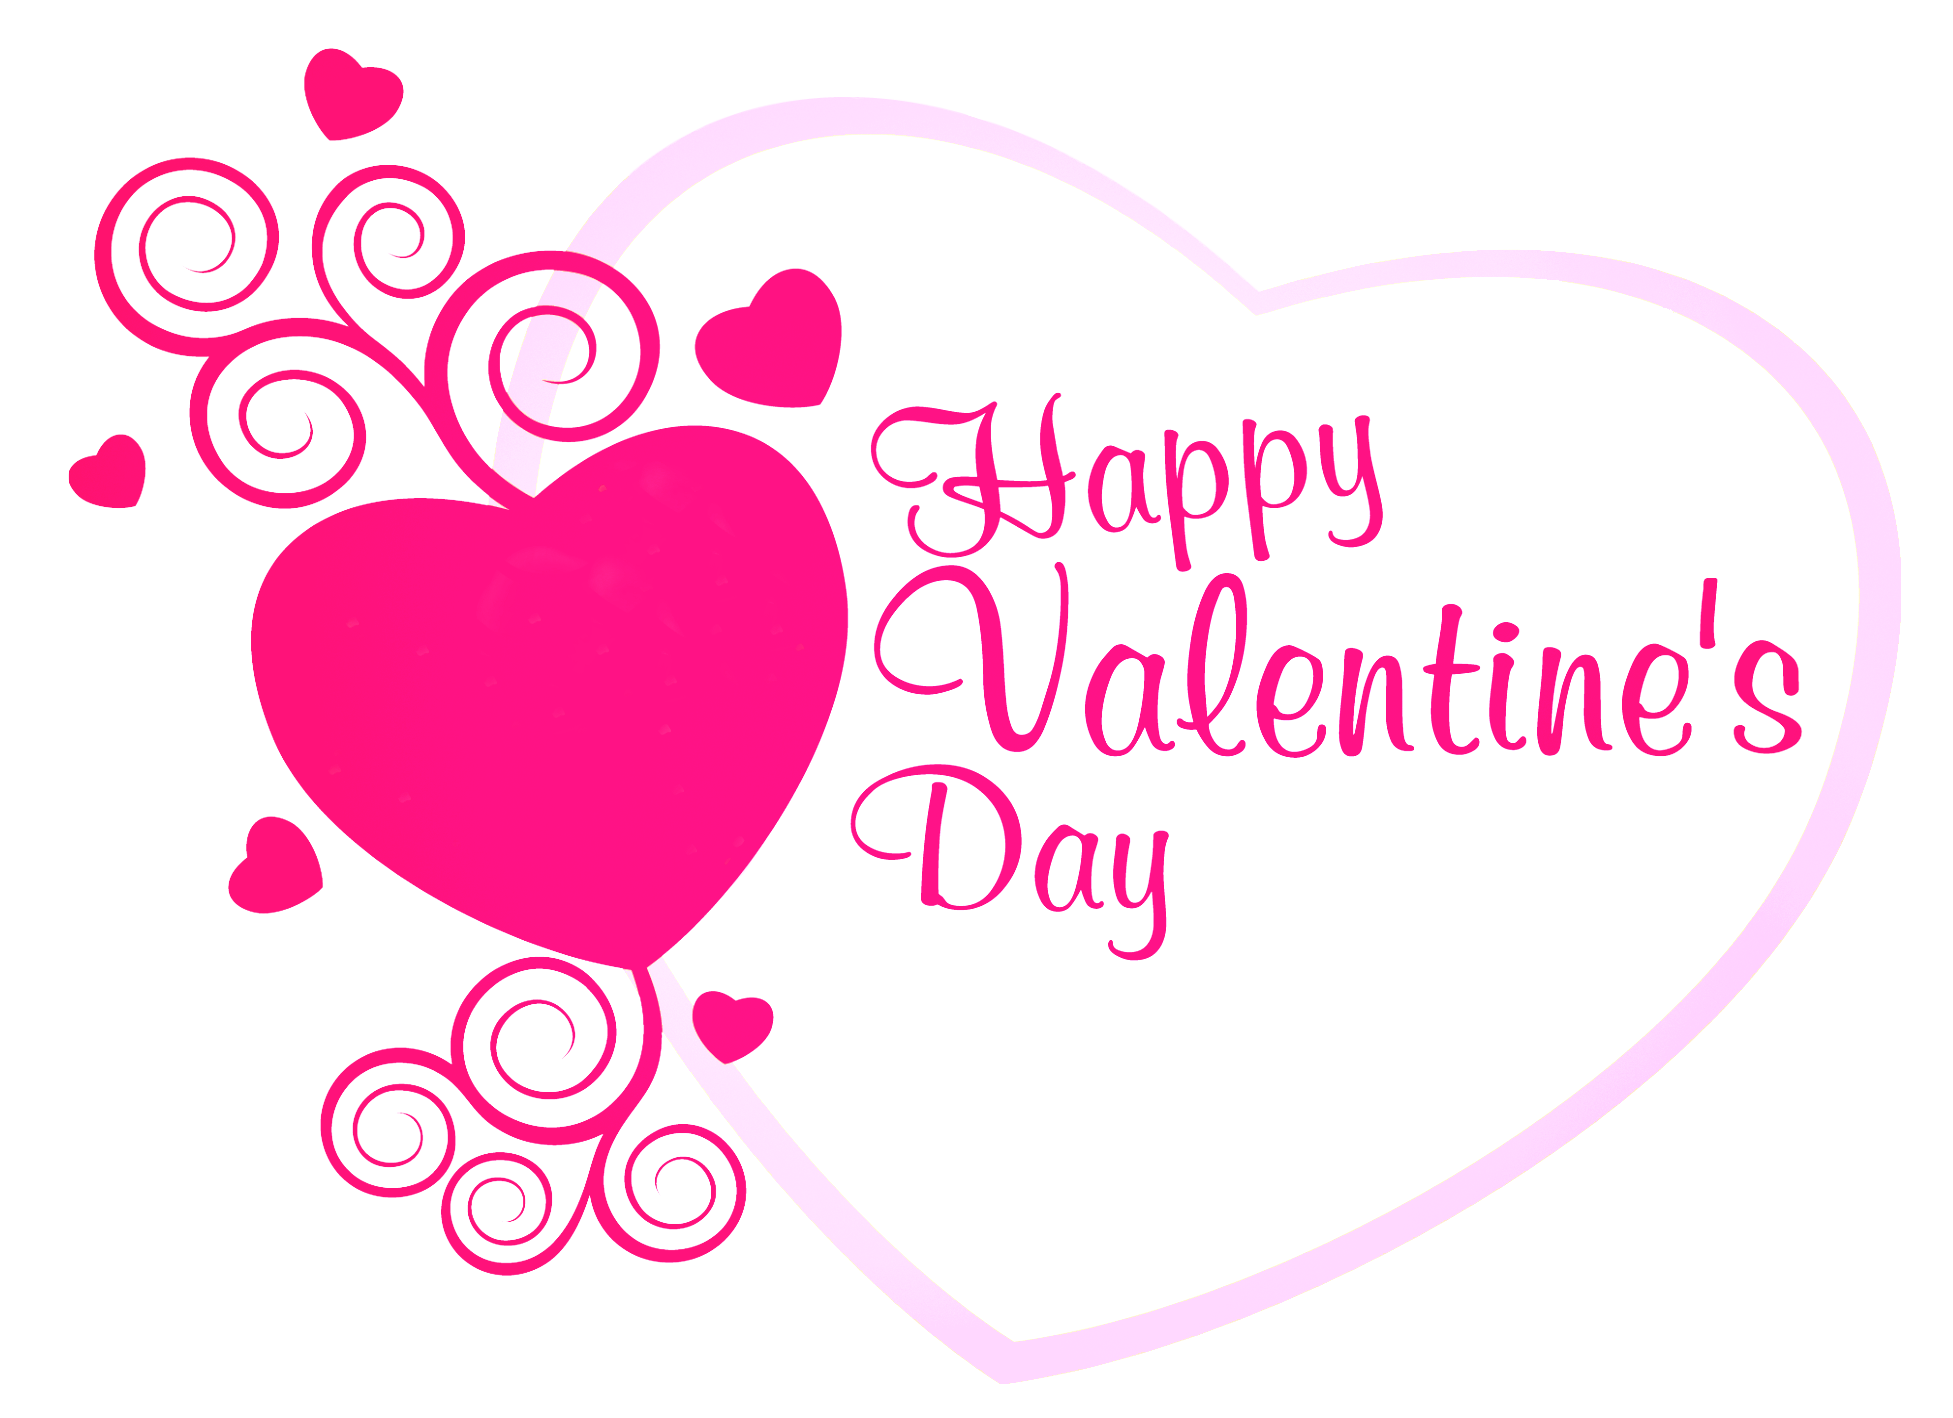 Heart clipart valentine\'s day #3.